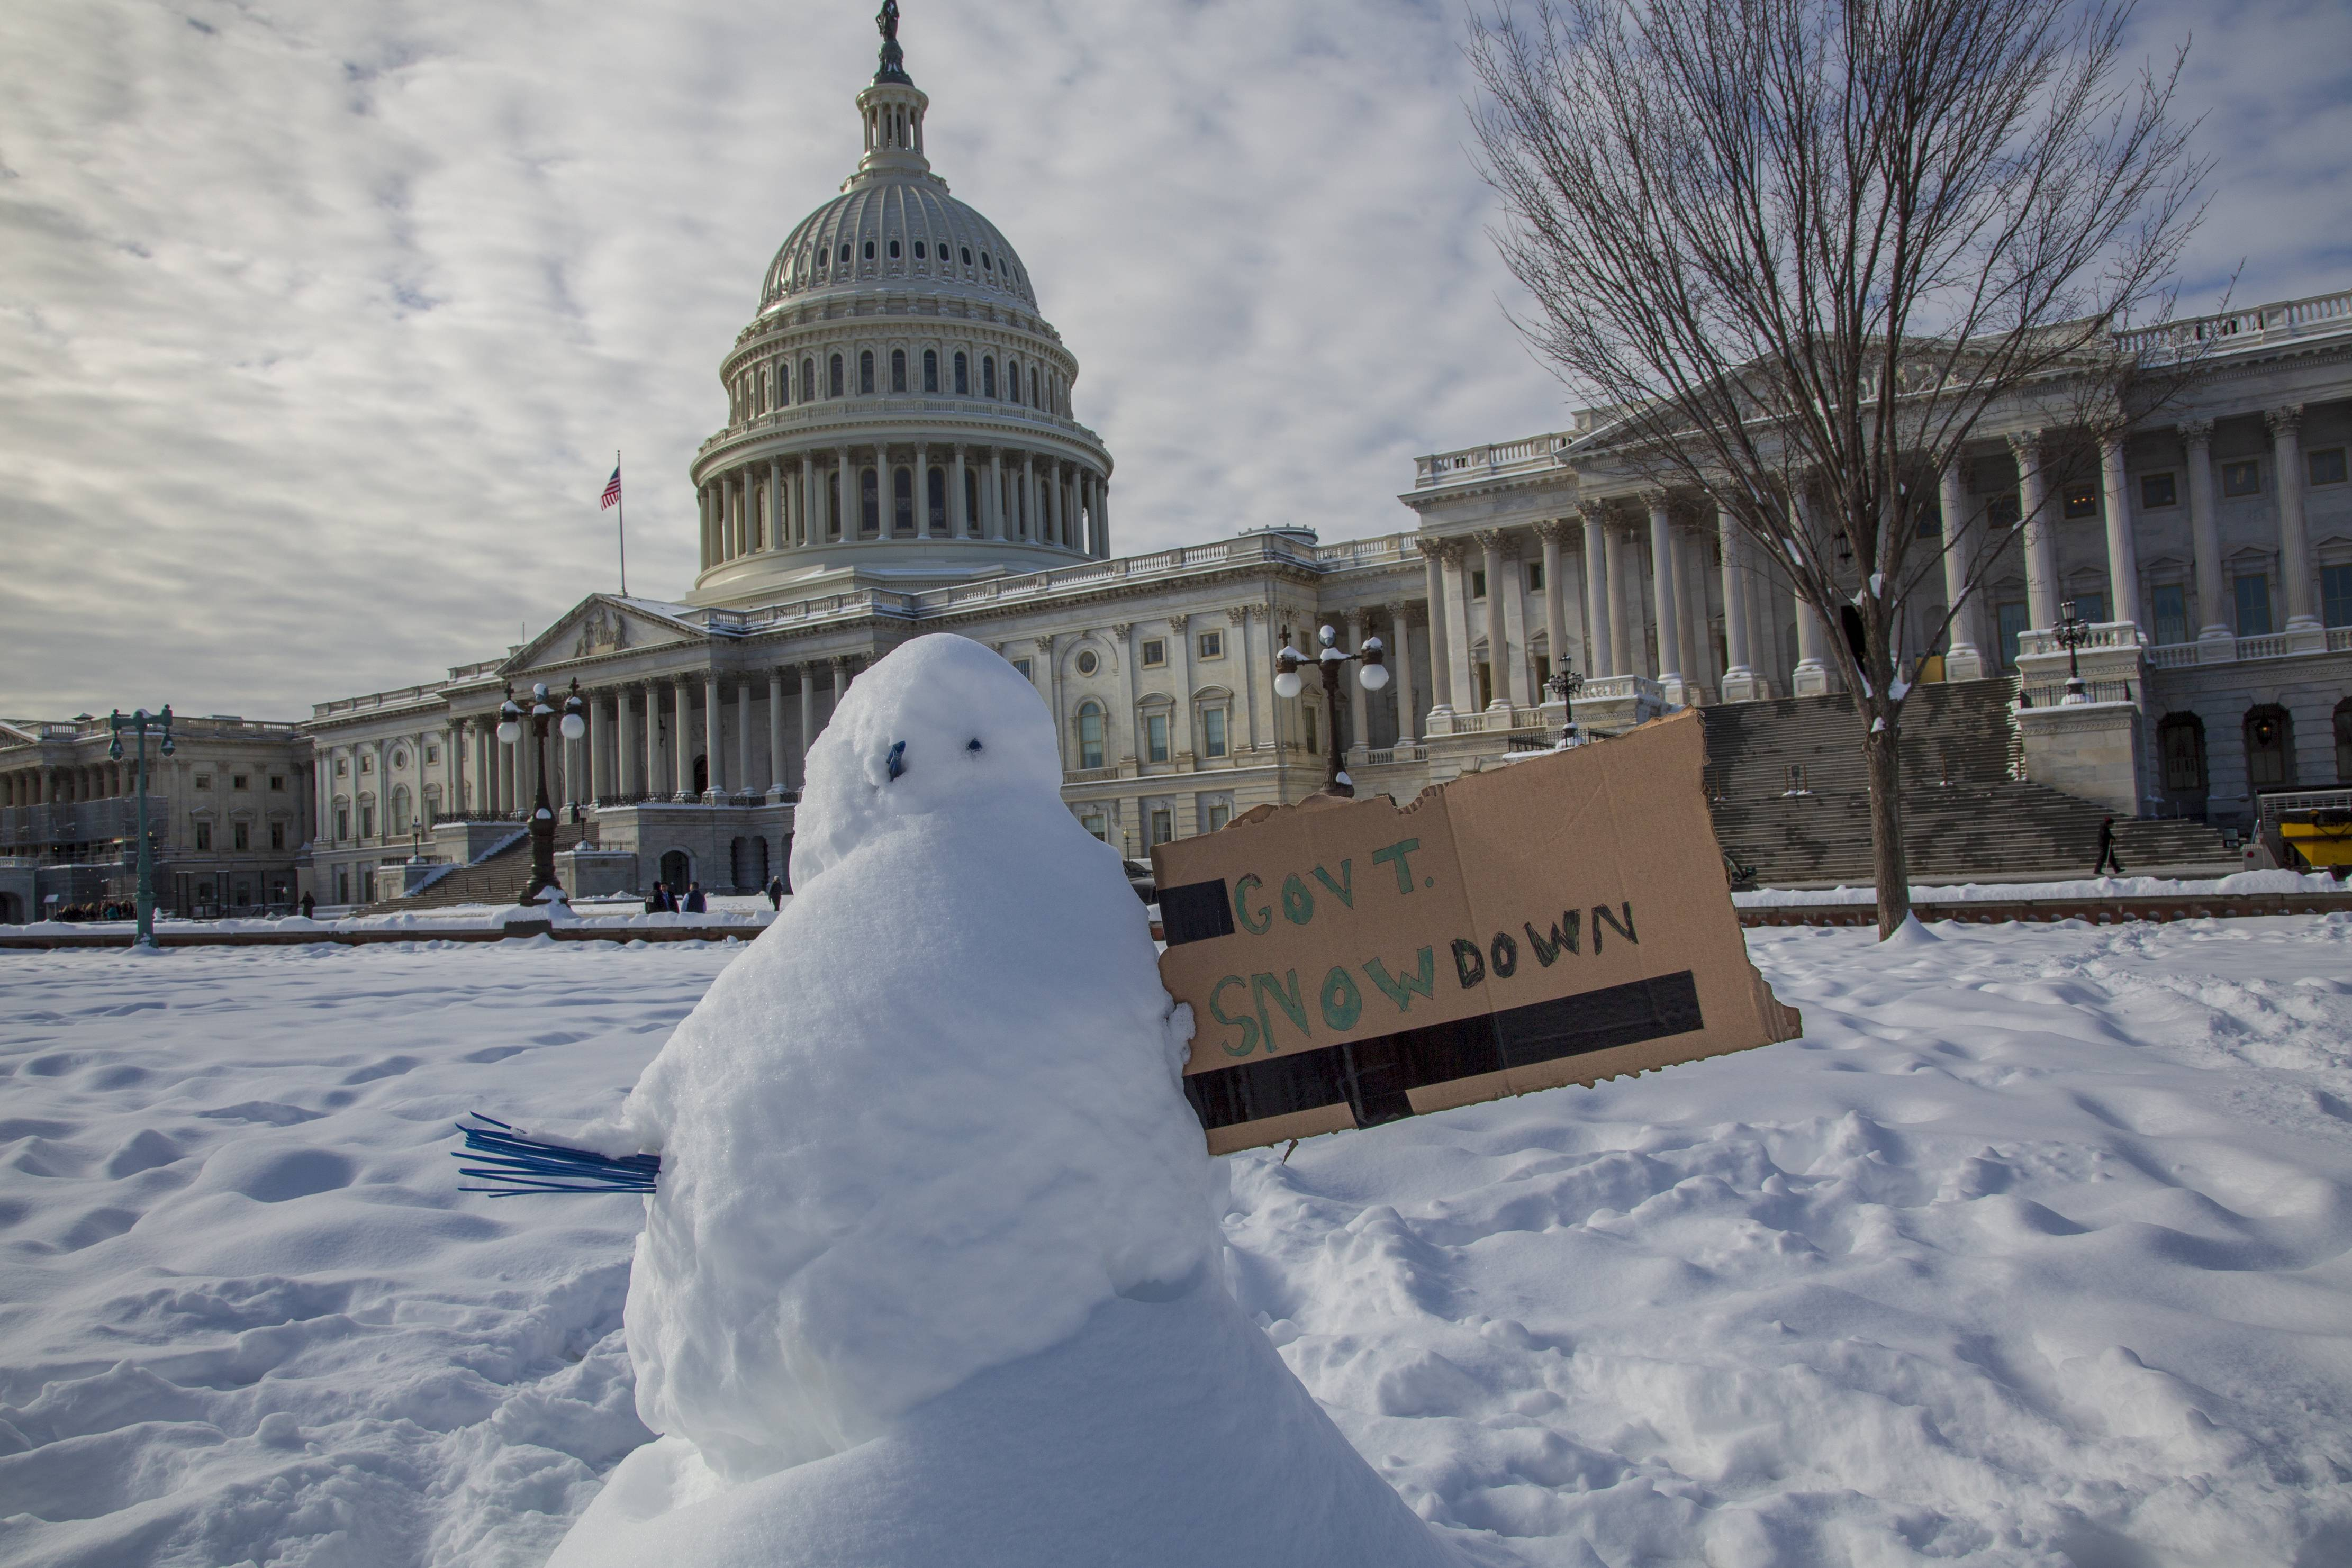 A snowman with a message is seen at the Capitol in Washington on the 24th day of a partial government shutdown, Monday, Jan. 14, 2019.